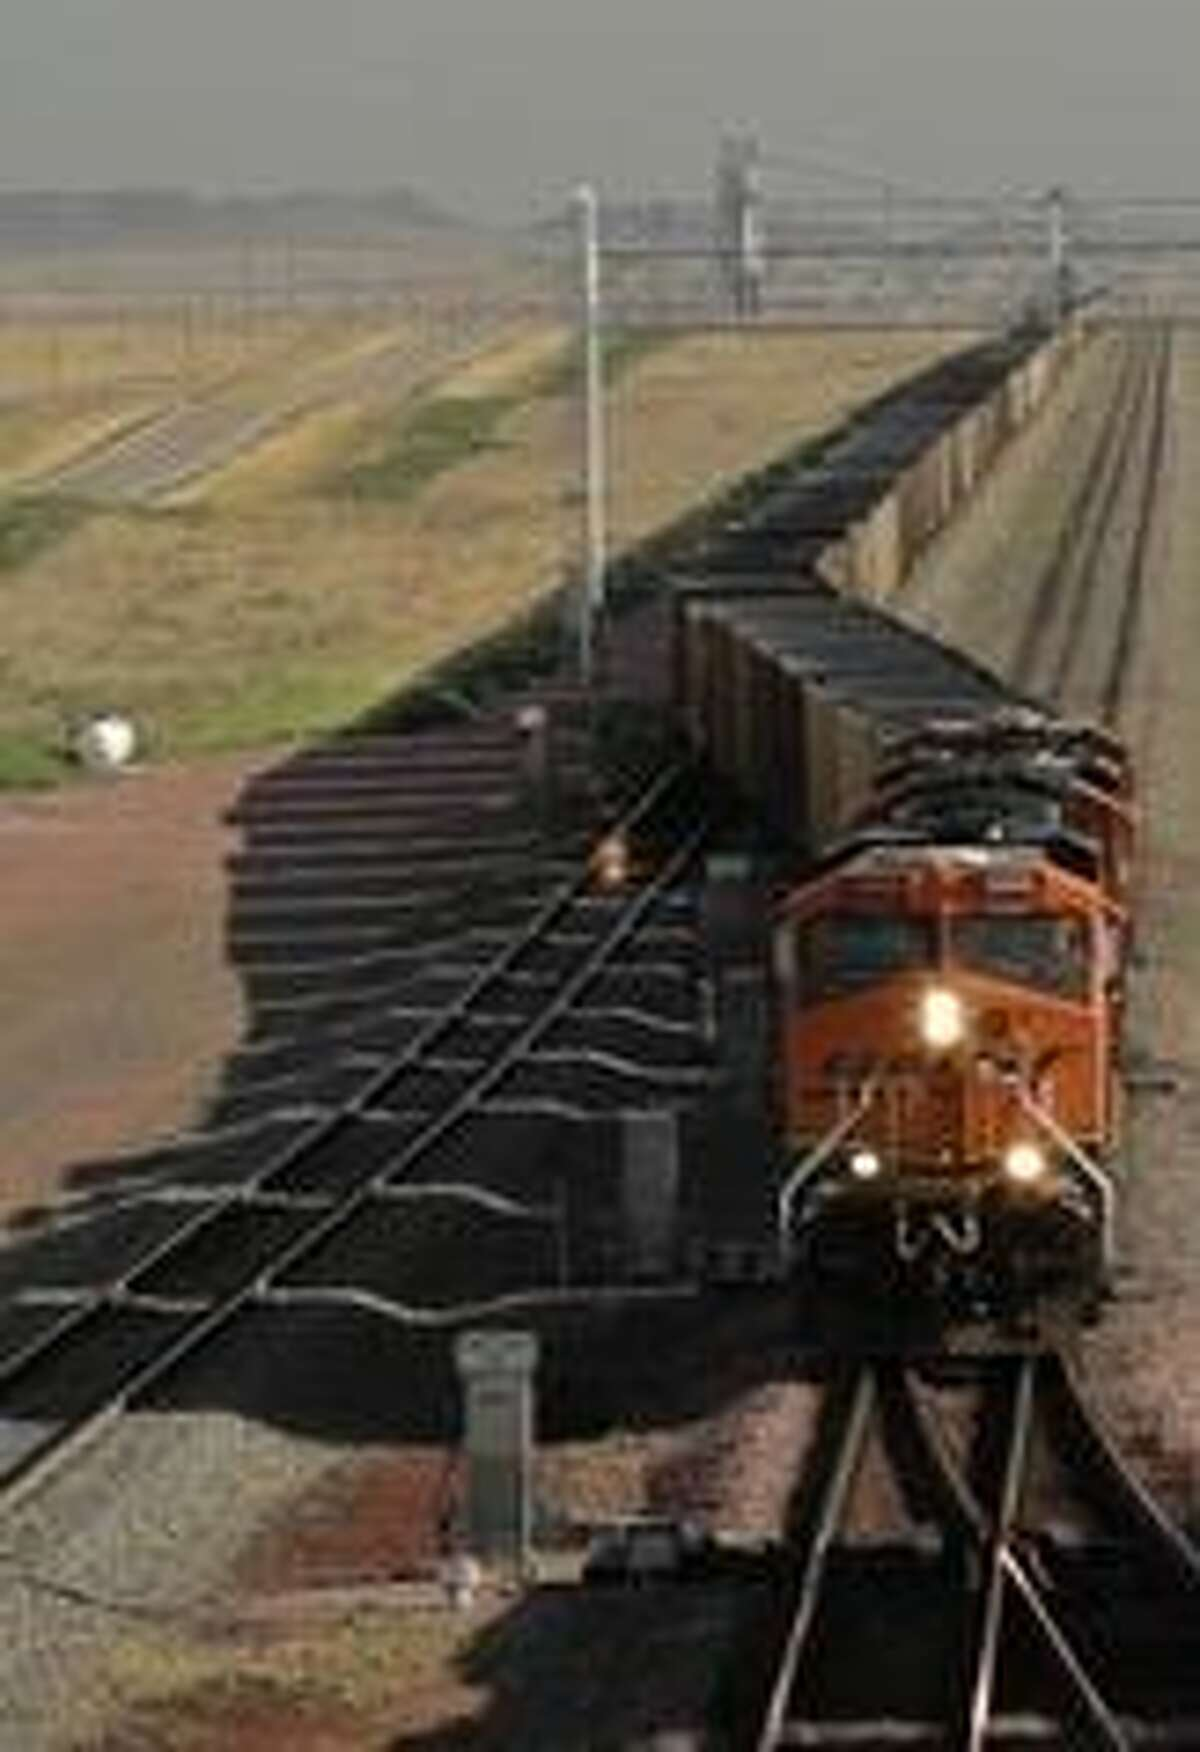 Coal trains can be more than a mile long. The cities of Surrey and New Westminster in British Columbia were not anxious to see them passing through their population centers,.